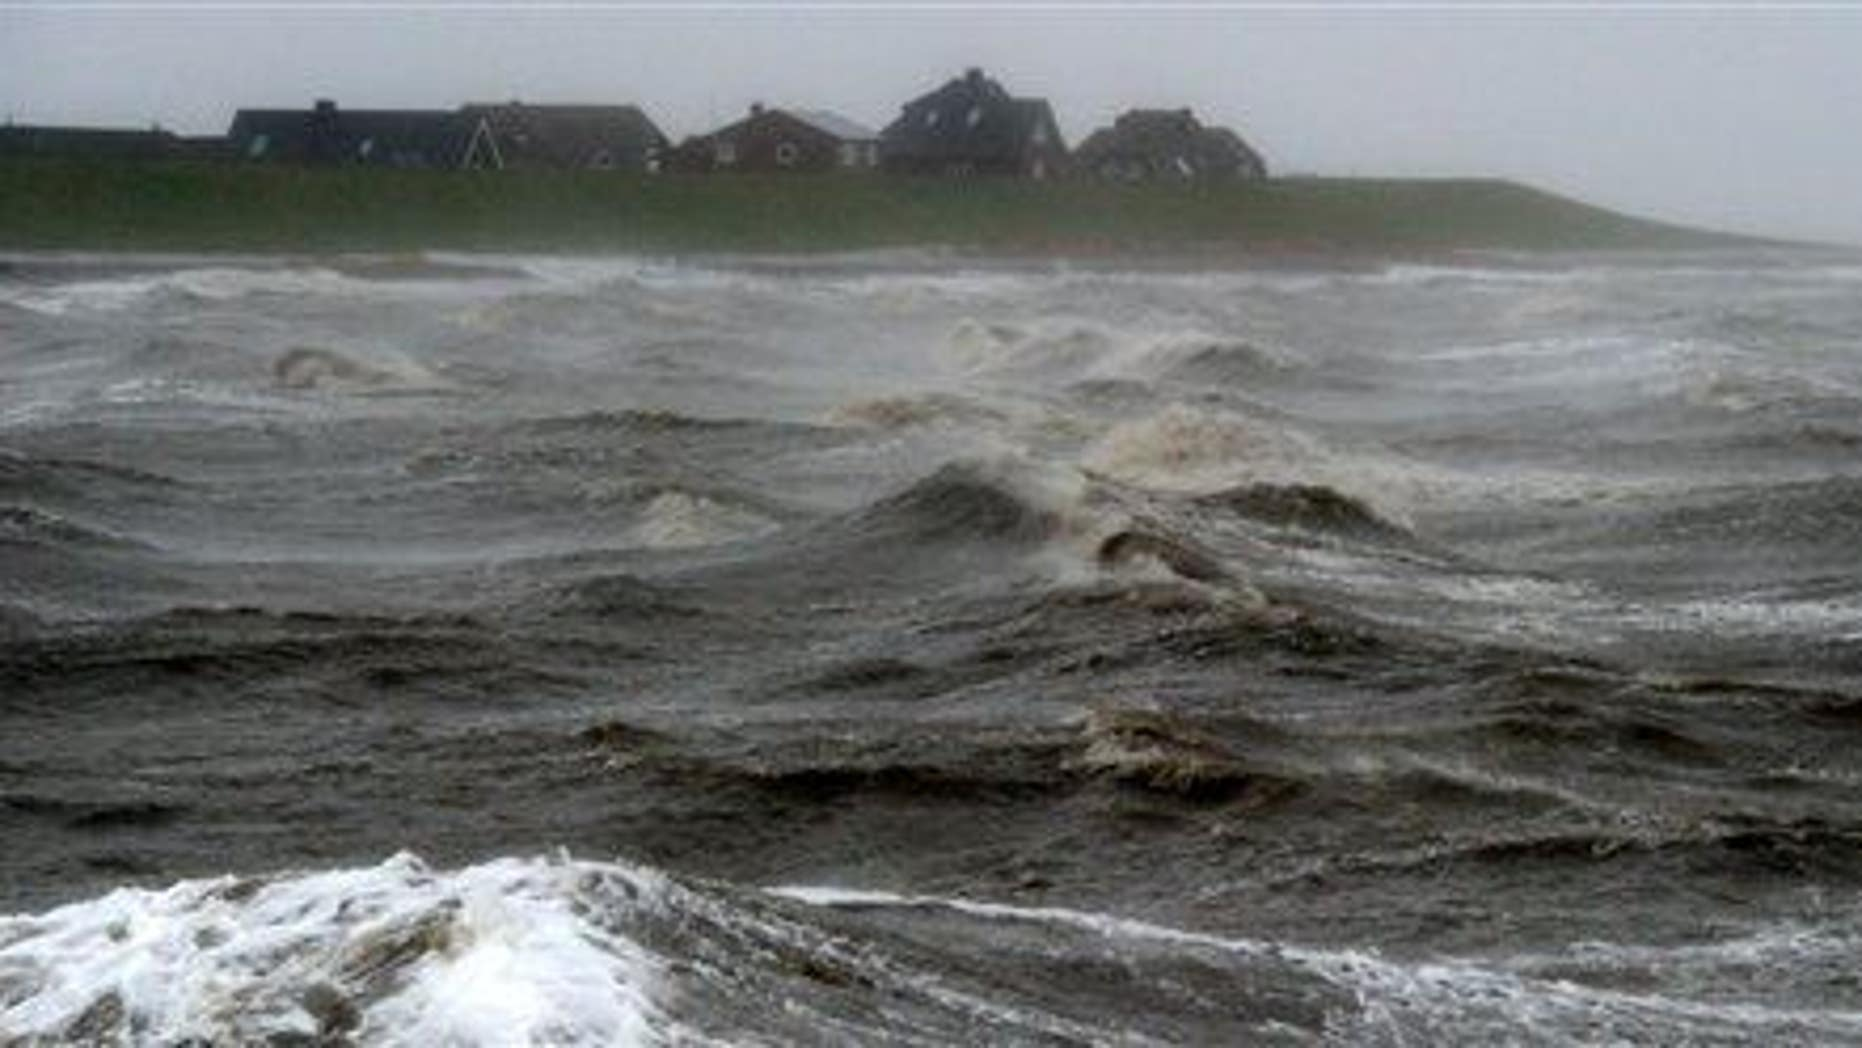 Waves batter the North Sea coast many centuries after Doggerland disappeared.